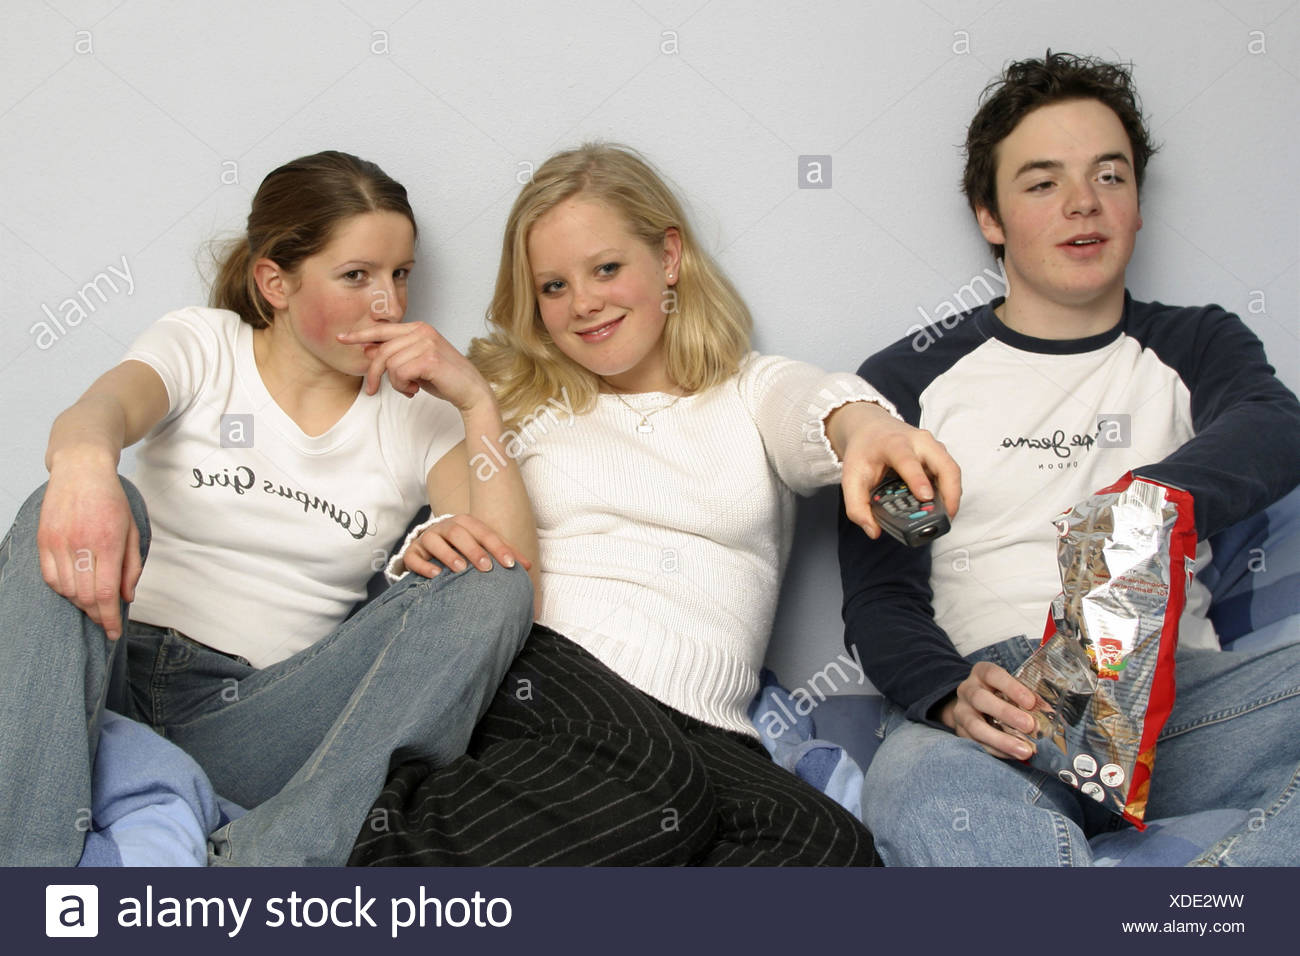 Teenagers, boy, girl, watch TV, zap, eat crisps, happy, only positive use 17 years, young persons, teenagers, three, friendship, friends, remote control, toggle, cycle selection, television evening, activity, entertainment, consumer electronics, fun, amus - Stock Image